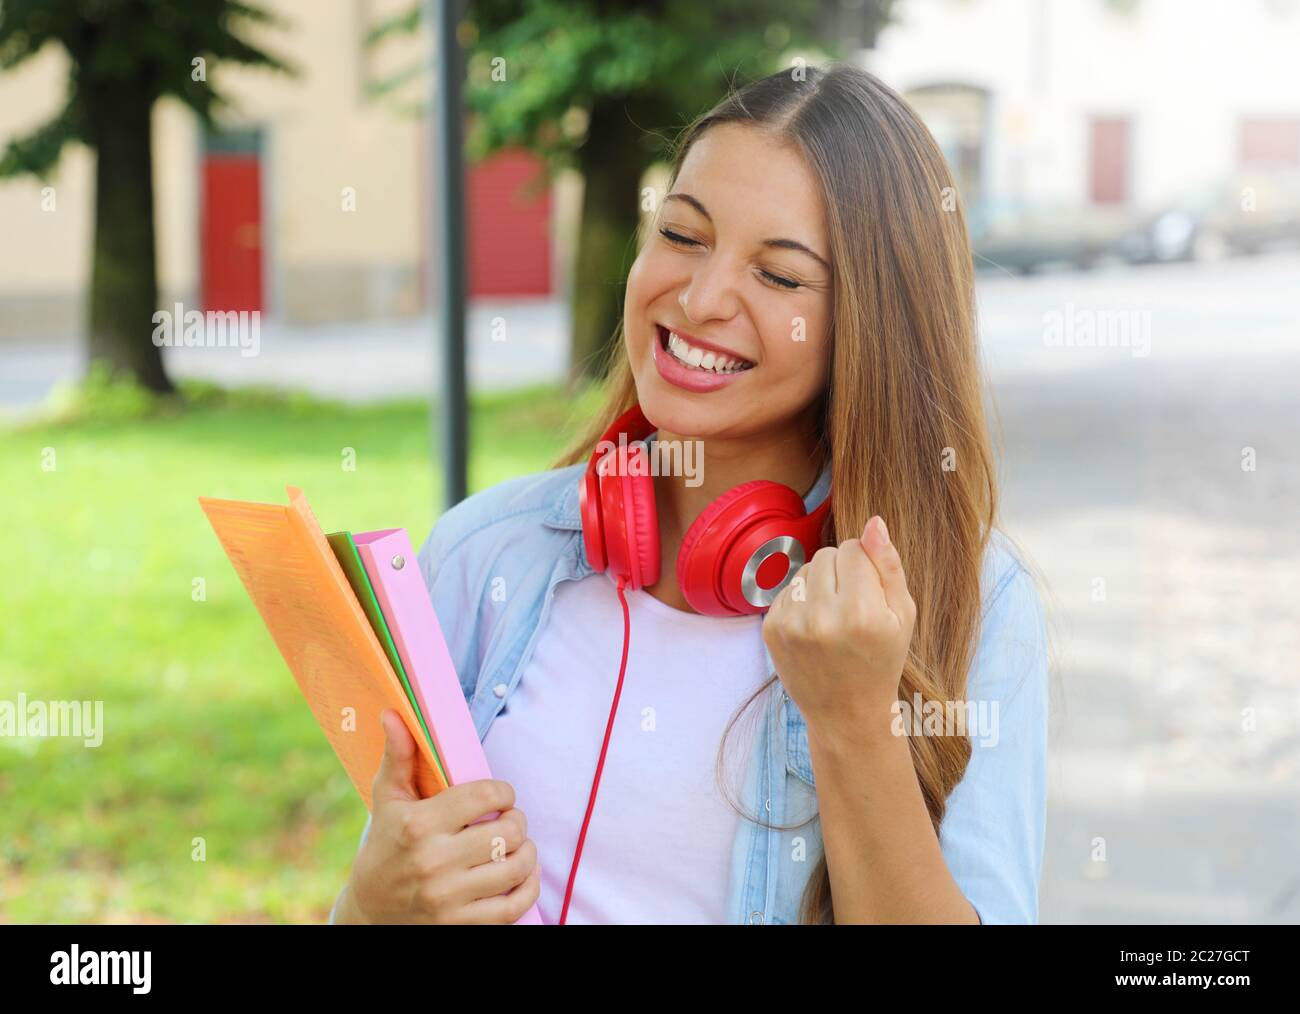 Portrait of excited laughing teenager girl with raising arm celebrating outdoors. Stock Photo